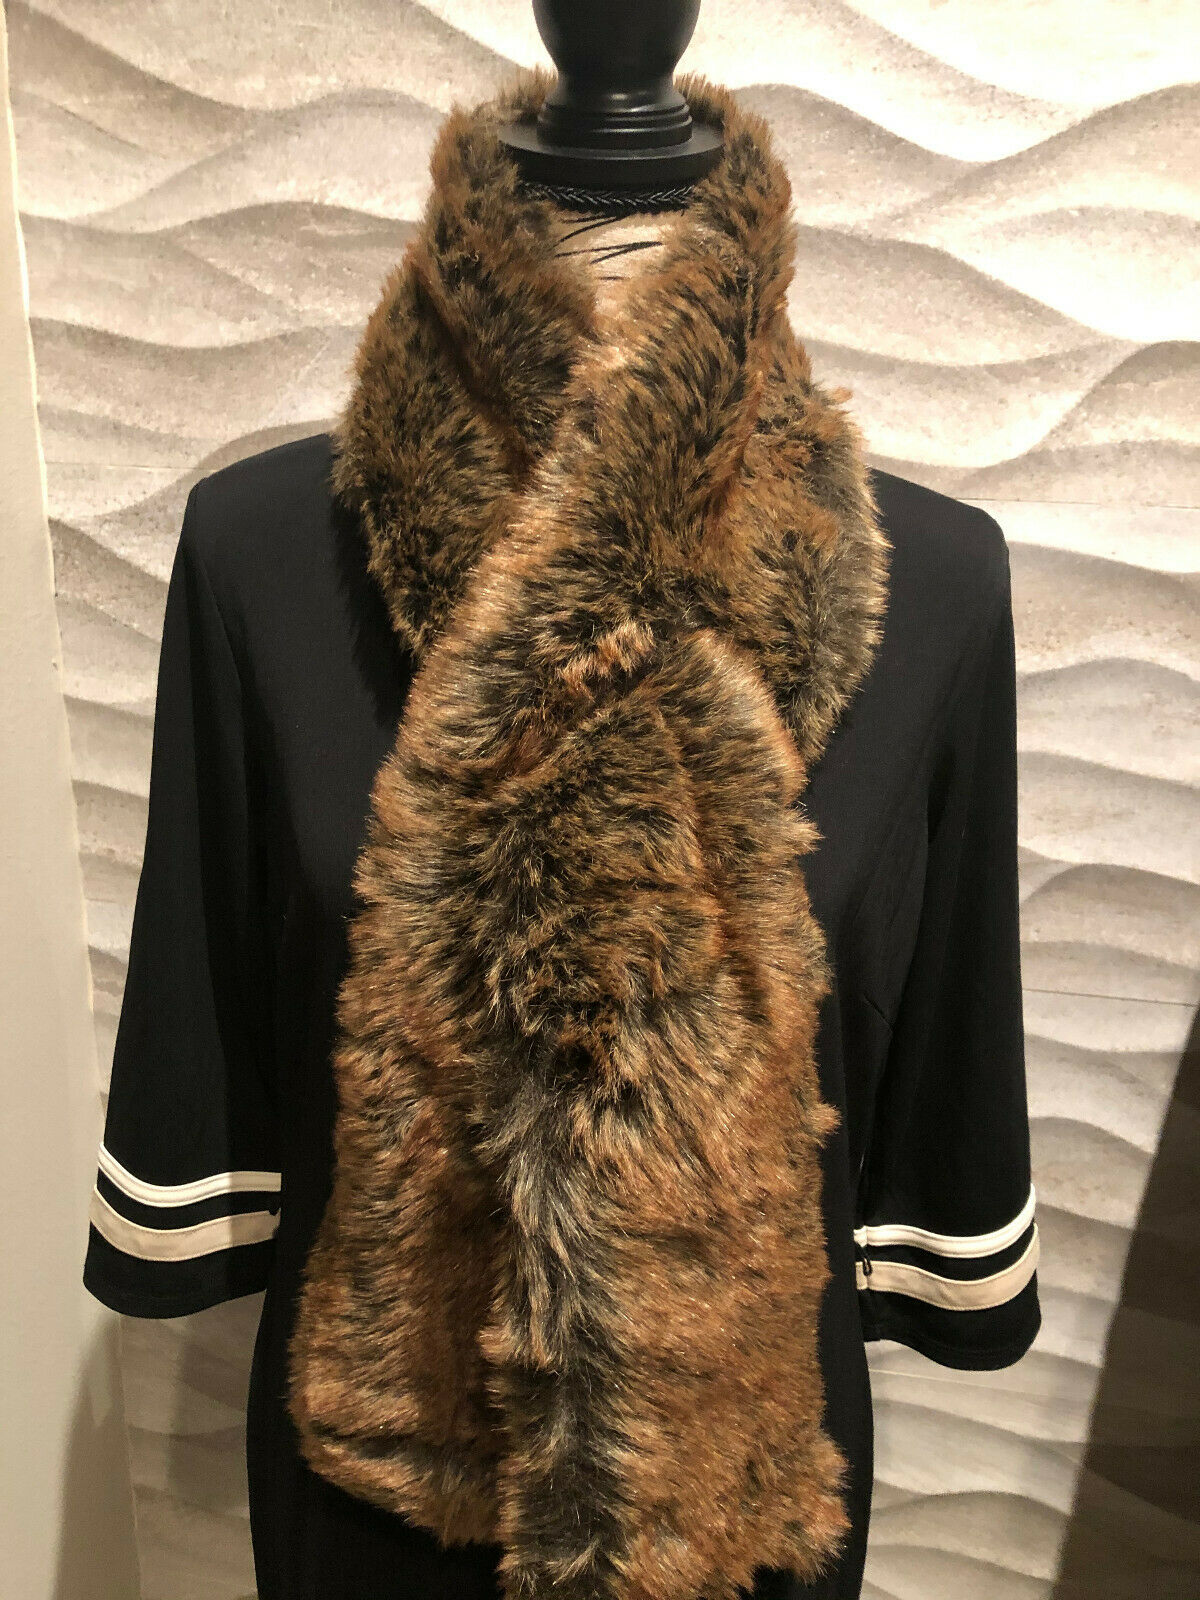 RESTORATION HARDWARE Luxe Faux Fur Neck Wrap & Tuck SCARF - Coyote -